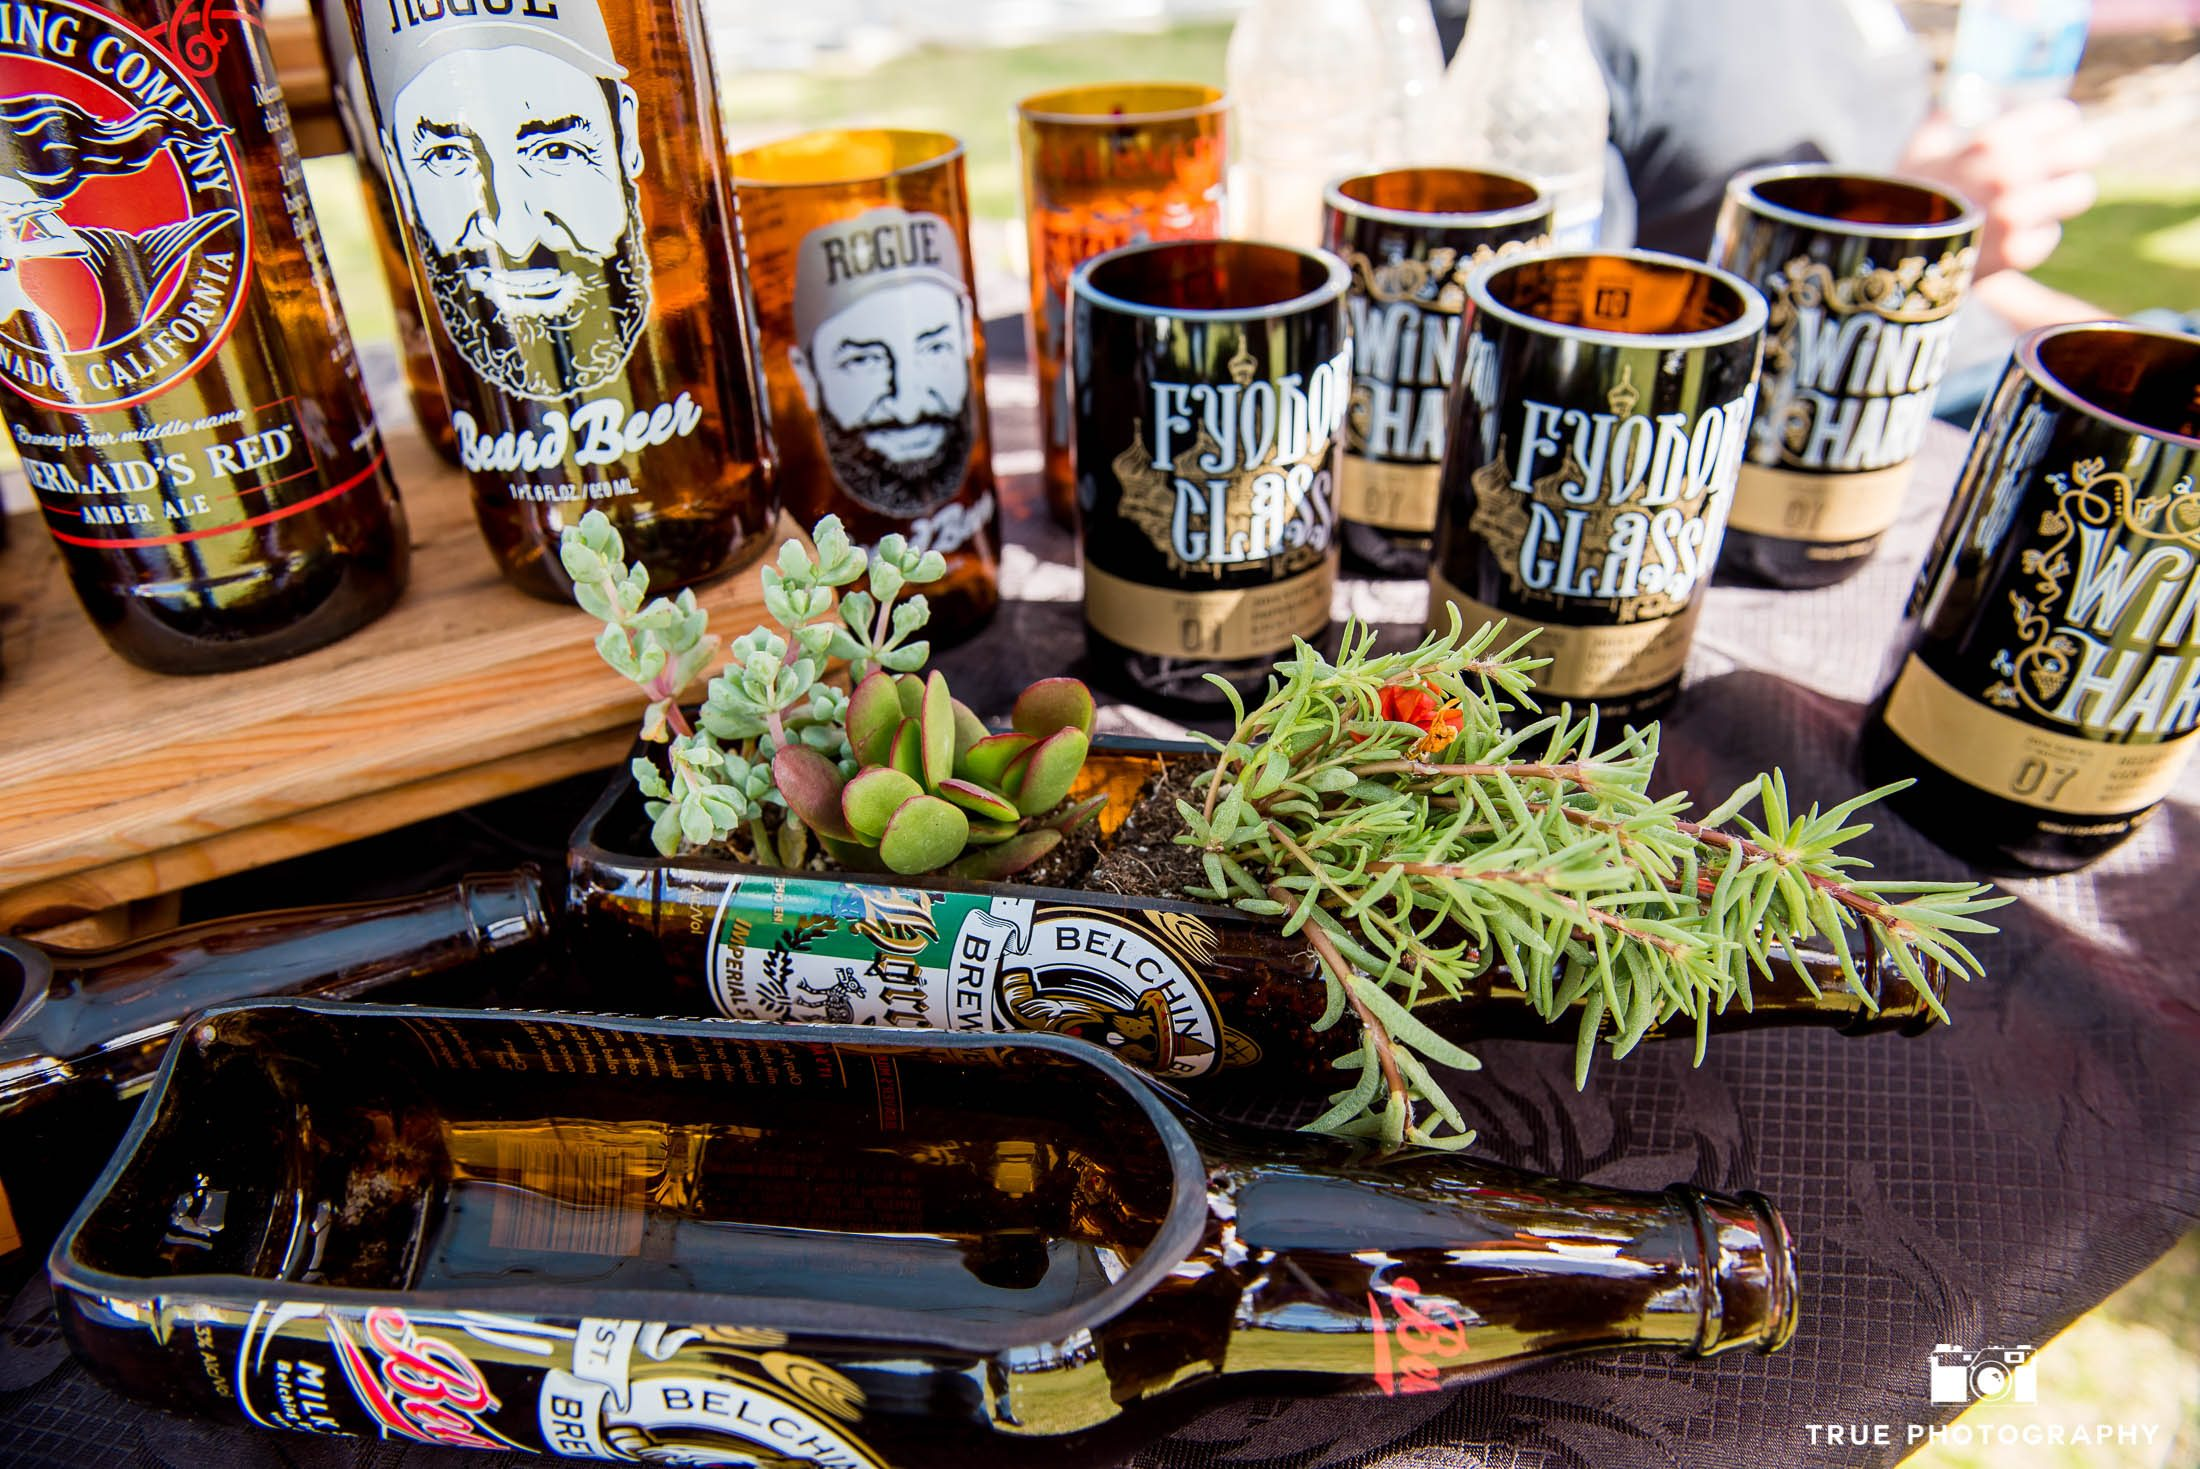 Custom beer glass art at Best Coast Beer Fest at Embarcadero Park